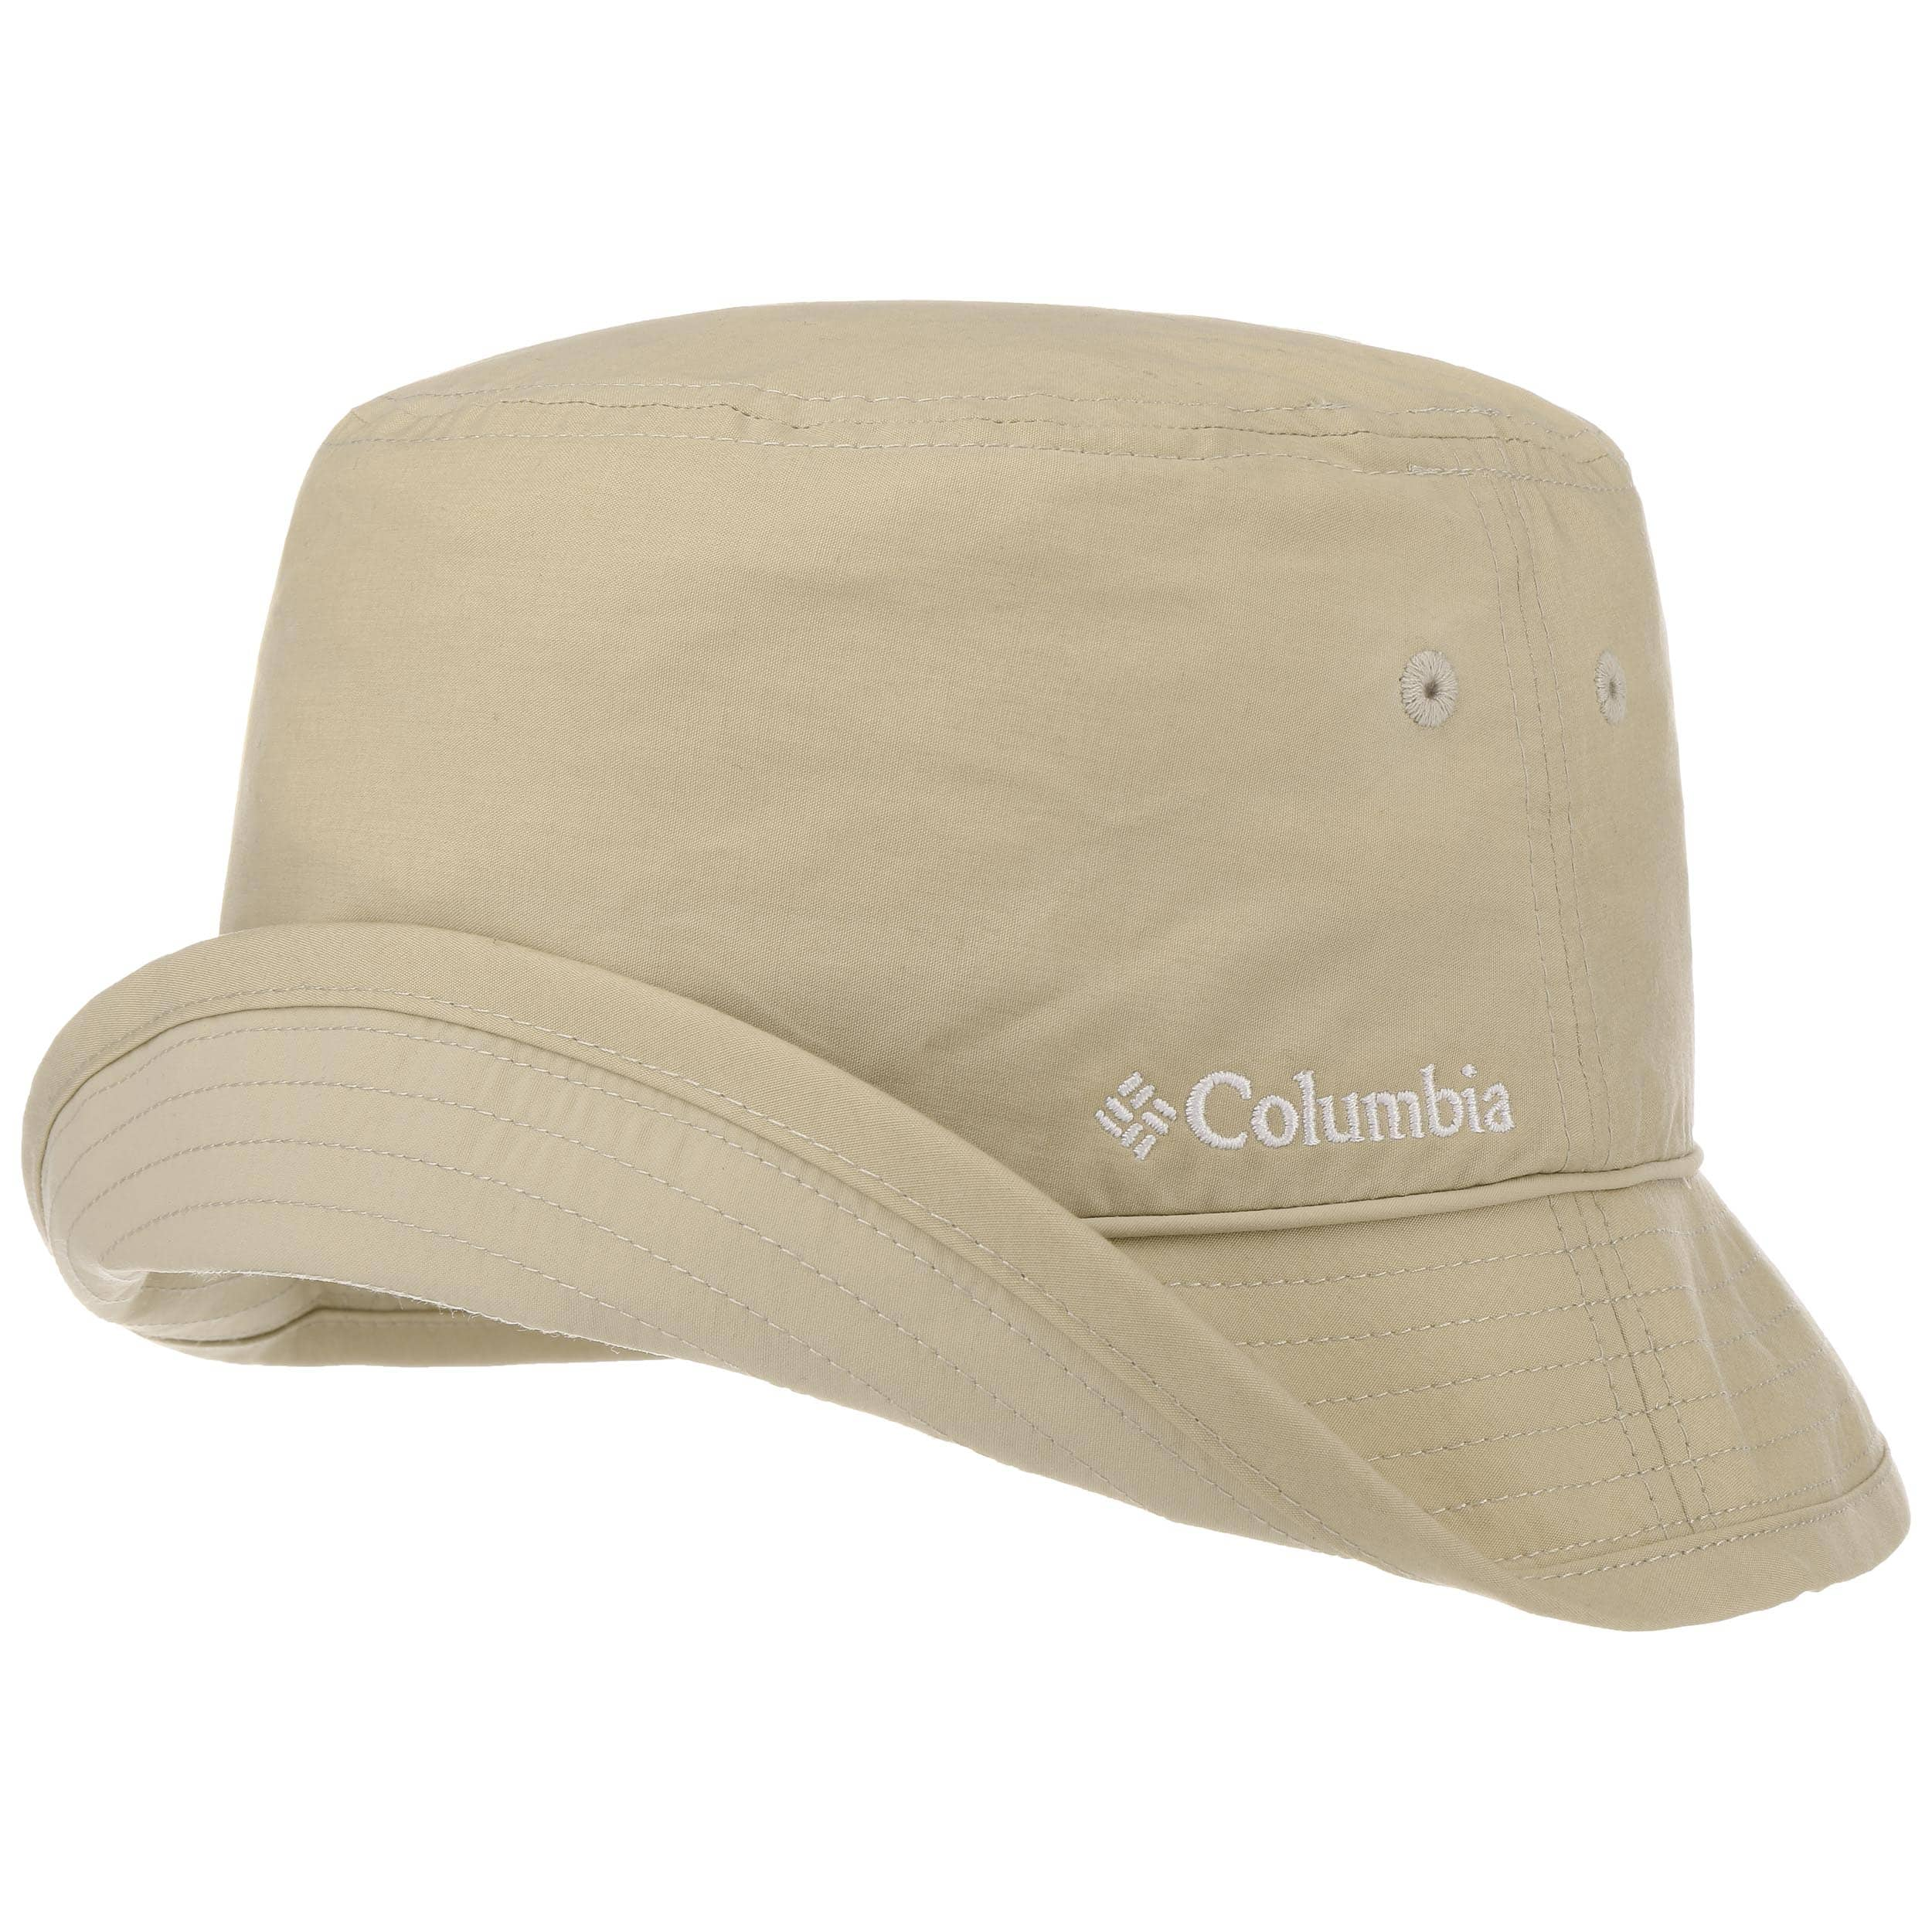 Pine Mountain Bucket Hat. by Columbia a6f8a310197